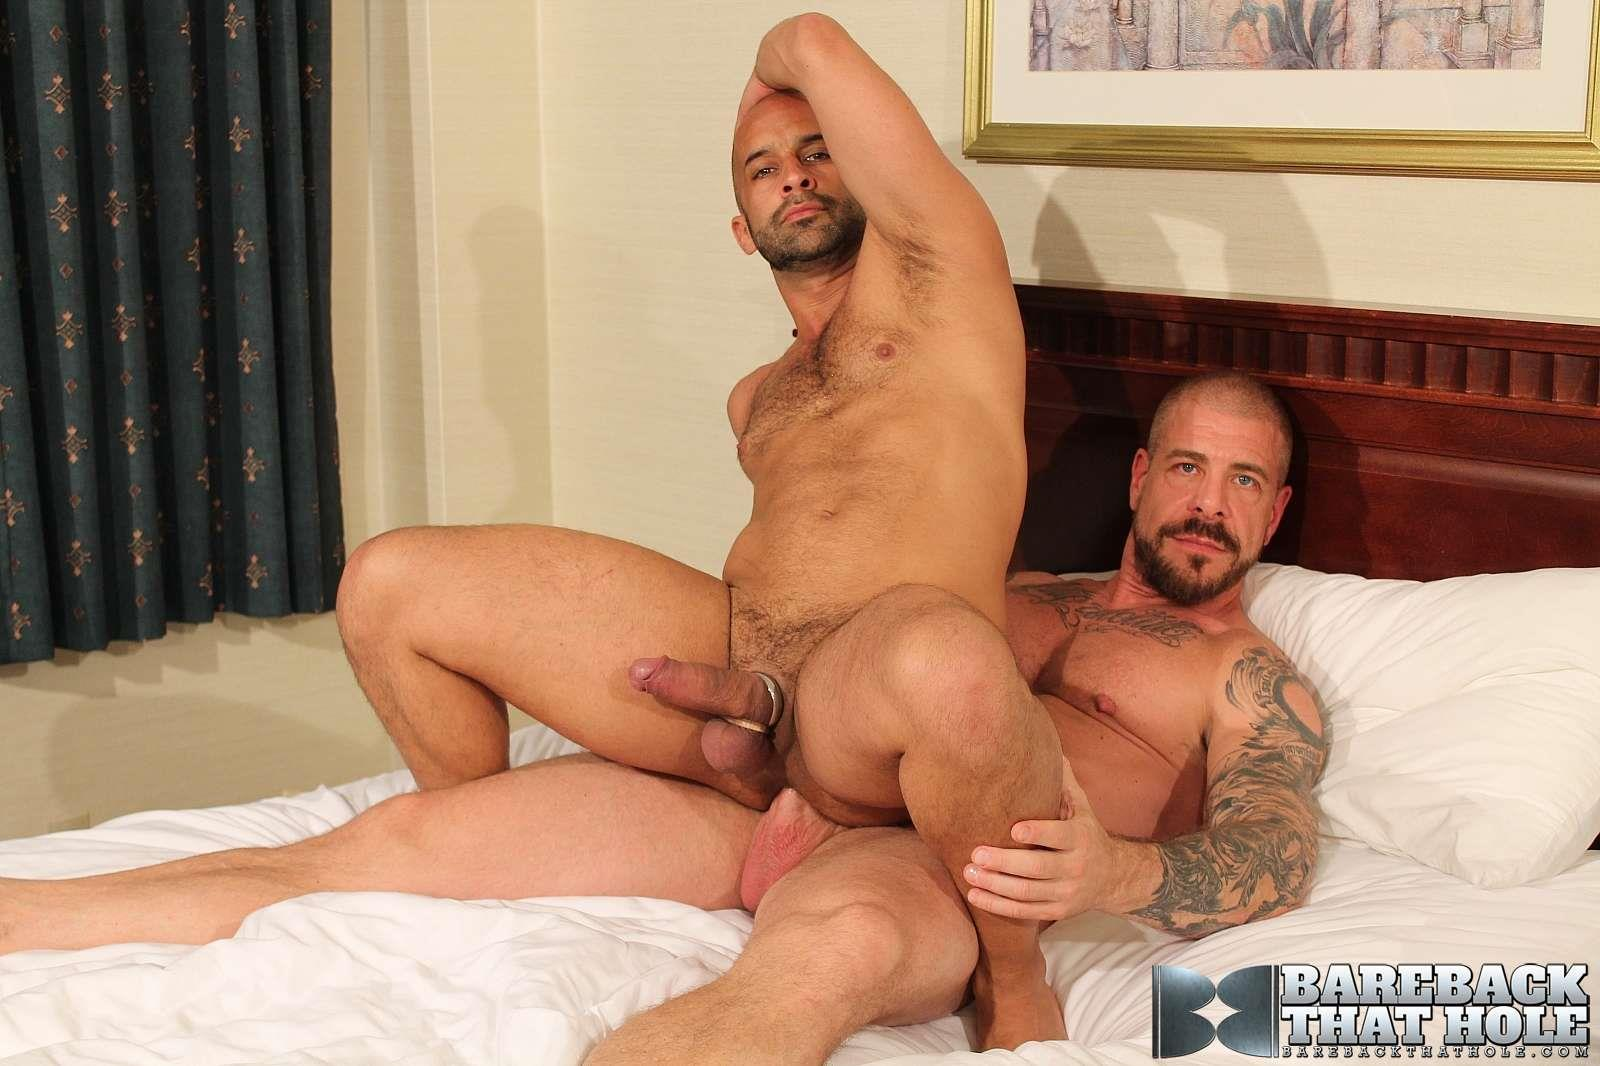 Bareback That Hole Bareback That Hole Rocco Steele and Igor Lukas Huge Cock Barebacking A Tight Ass Amateur Gay Porn 23 Rocco Steele Tearing Up A Tight Ass With His Huge Cock